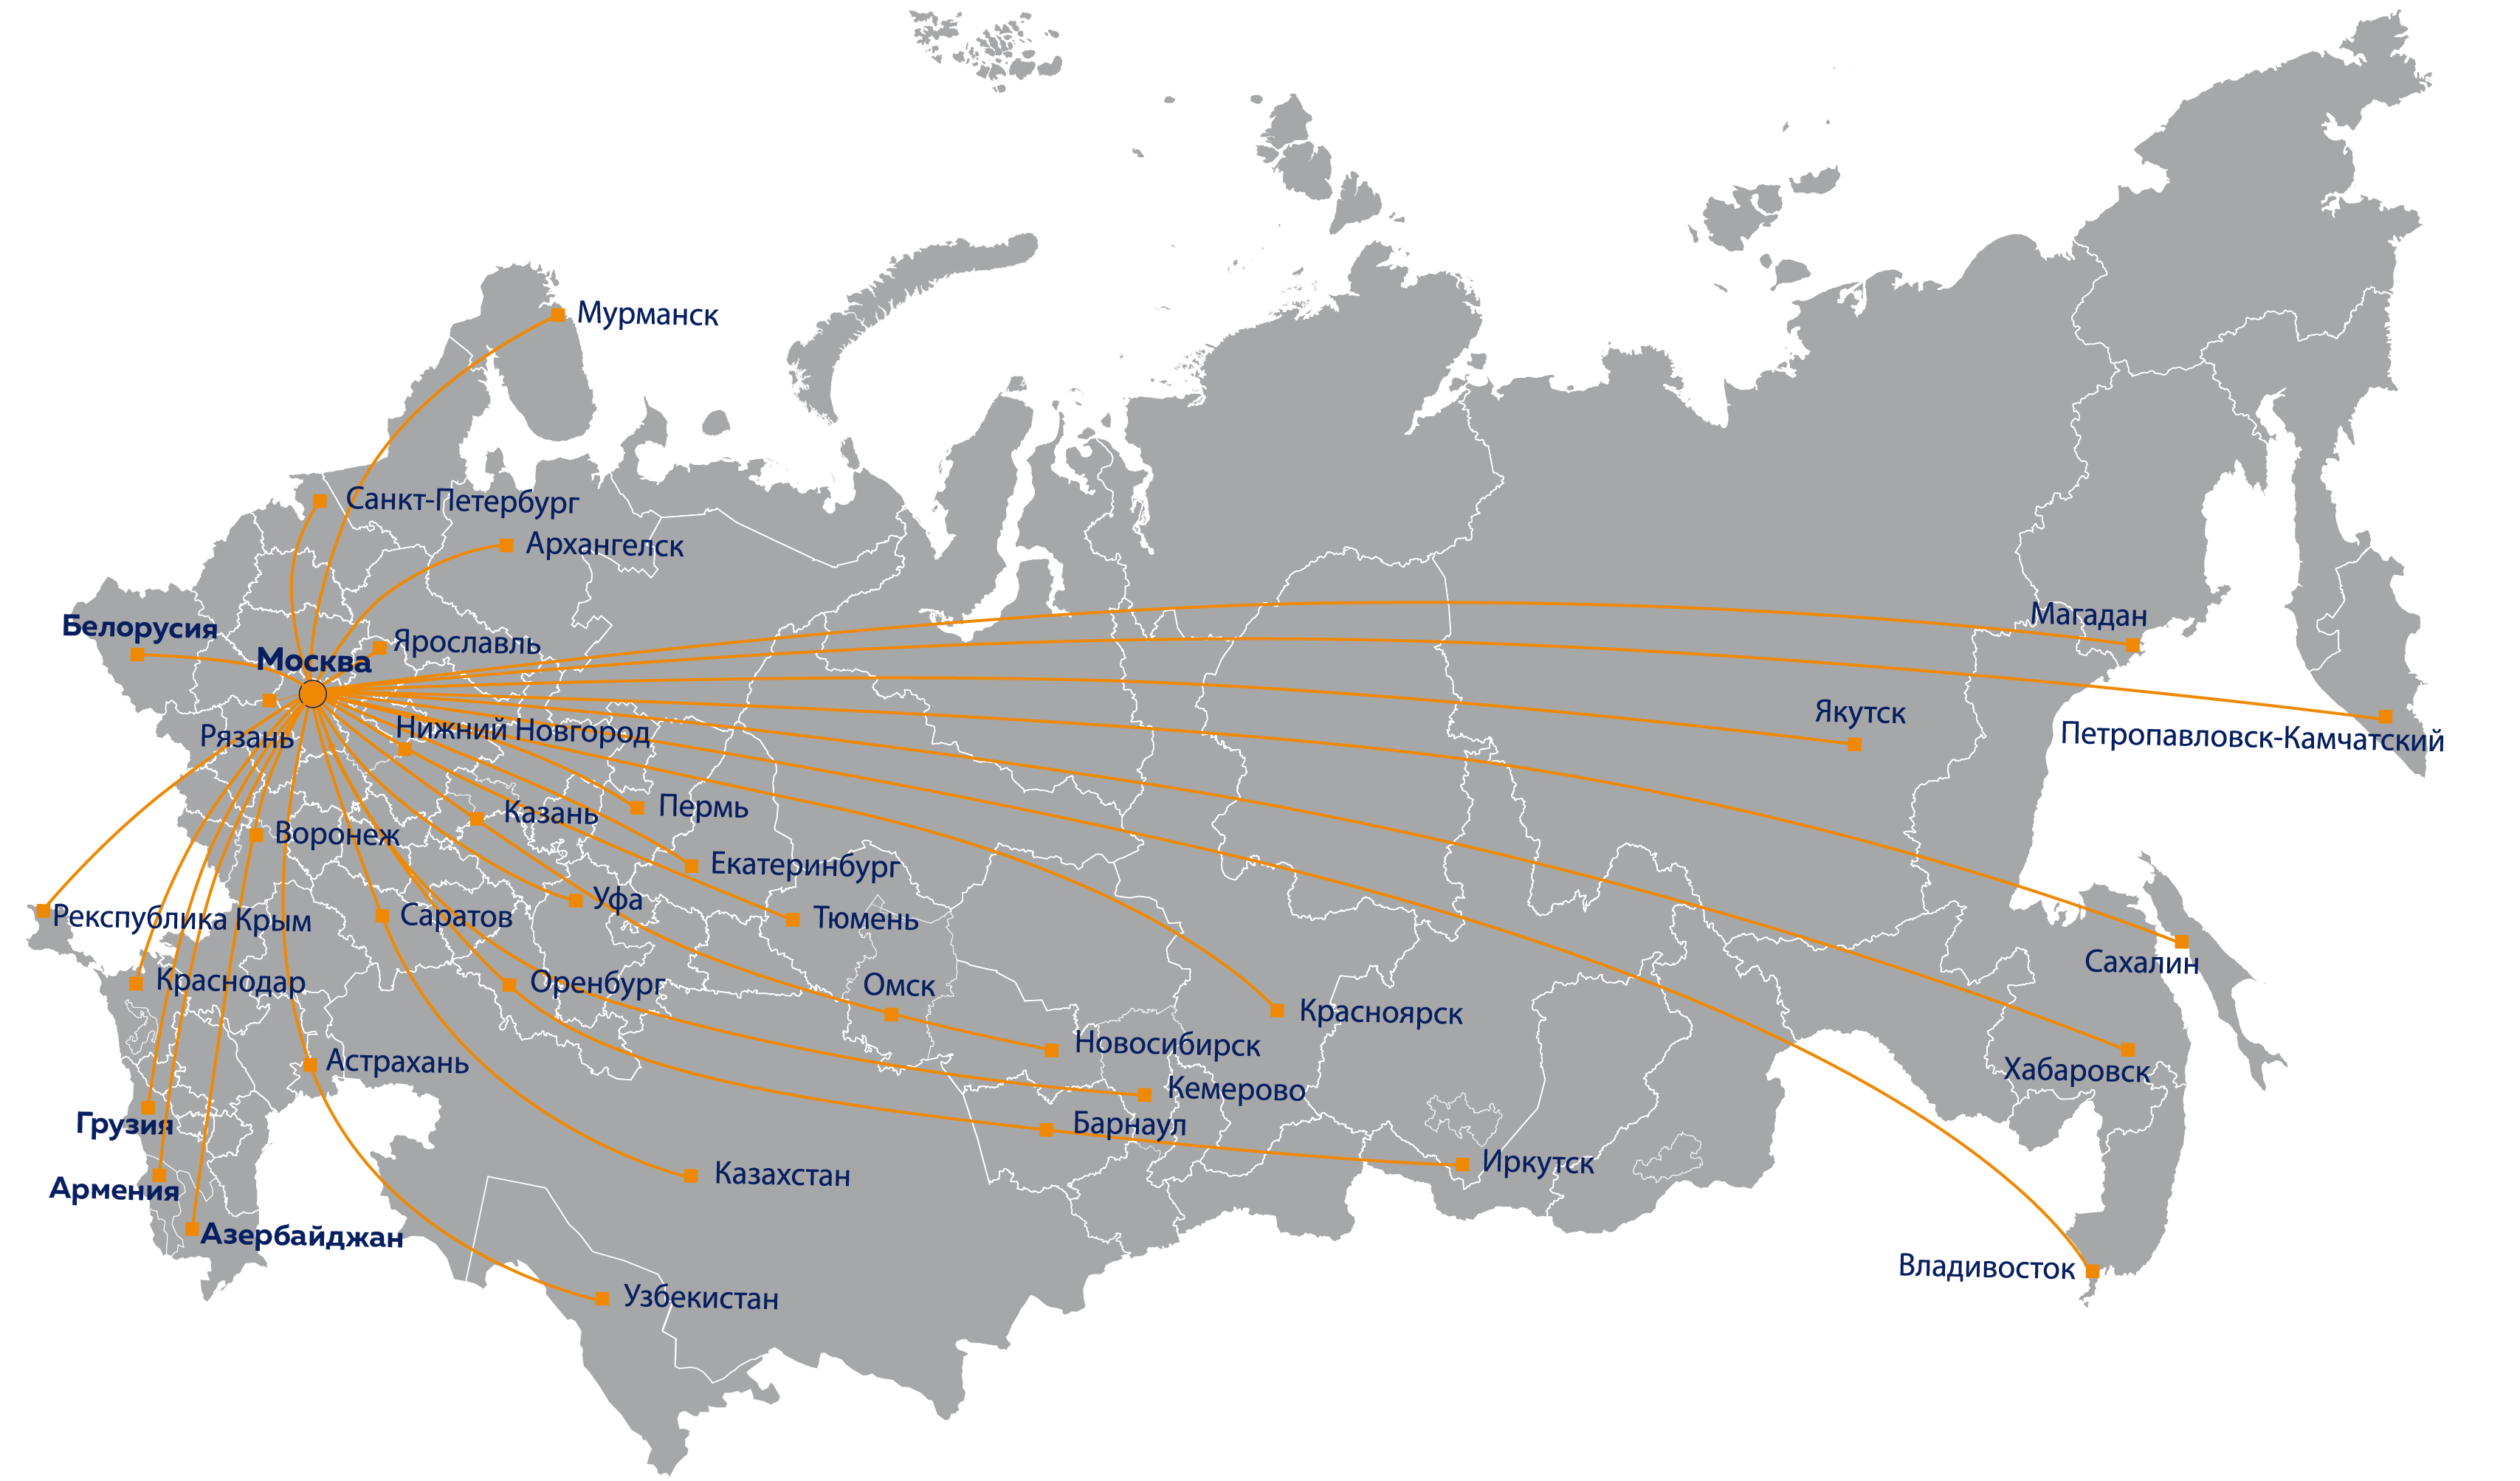 navien_map_russia_cis.png (910 KB)